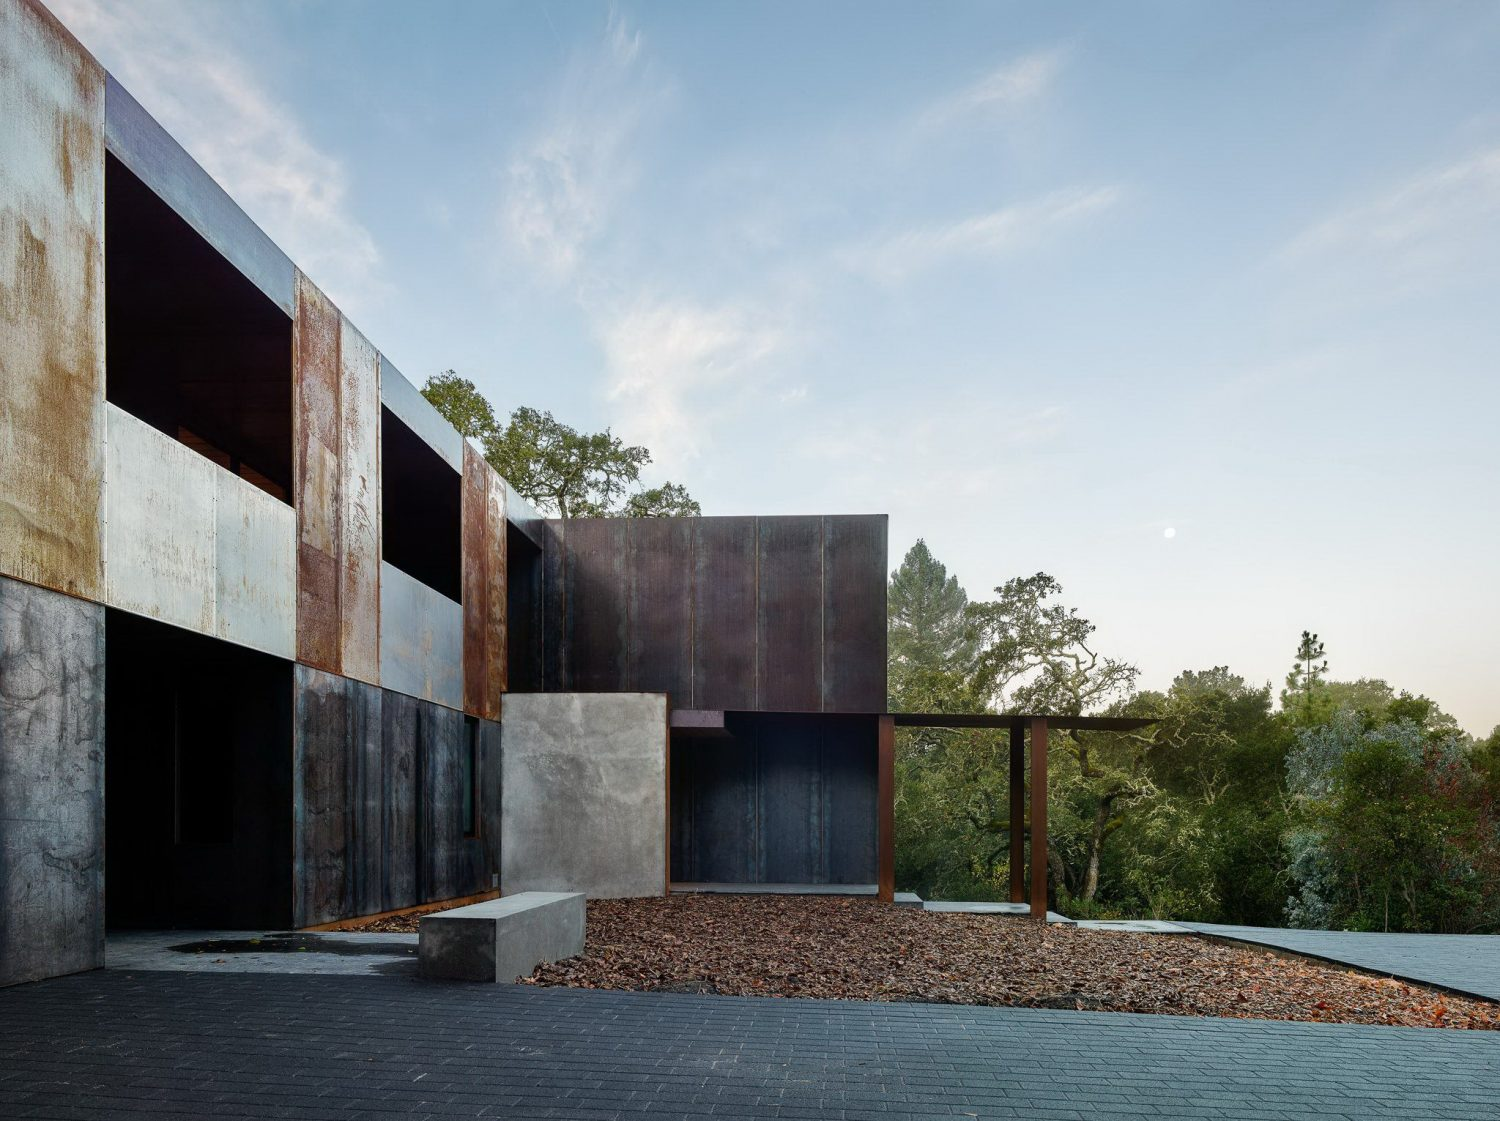 Miner Road House by Faulkner Architects